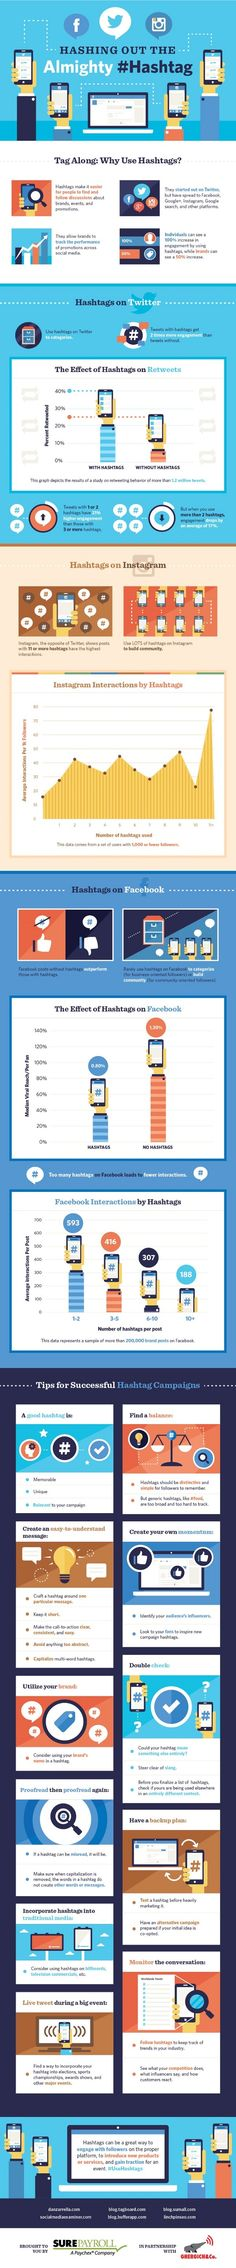 Infographic: How To Use Hashtags Effectively On Instagram, Facebook And Twitter - DesignTAXI.com